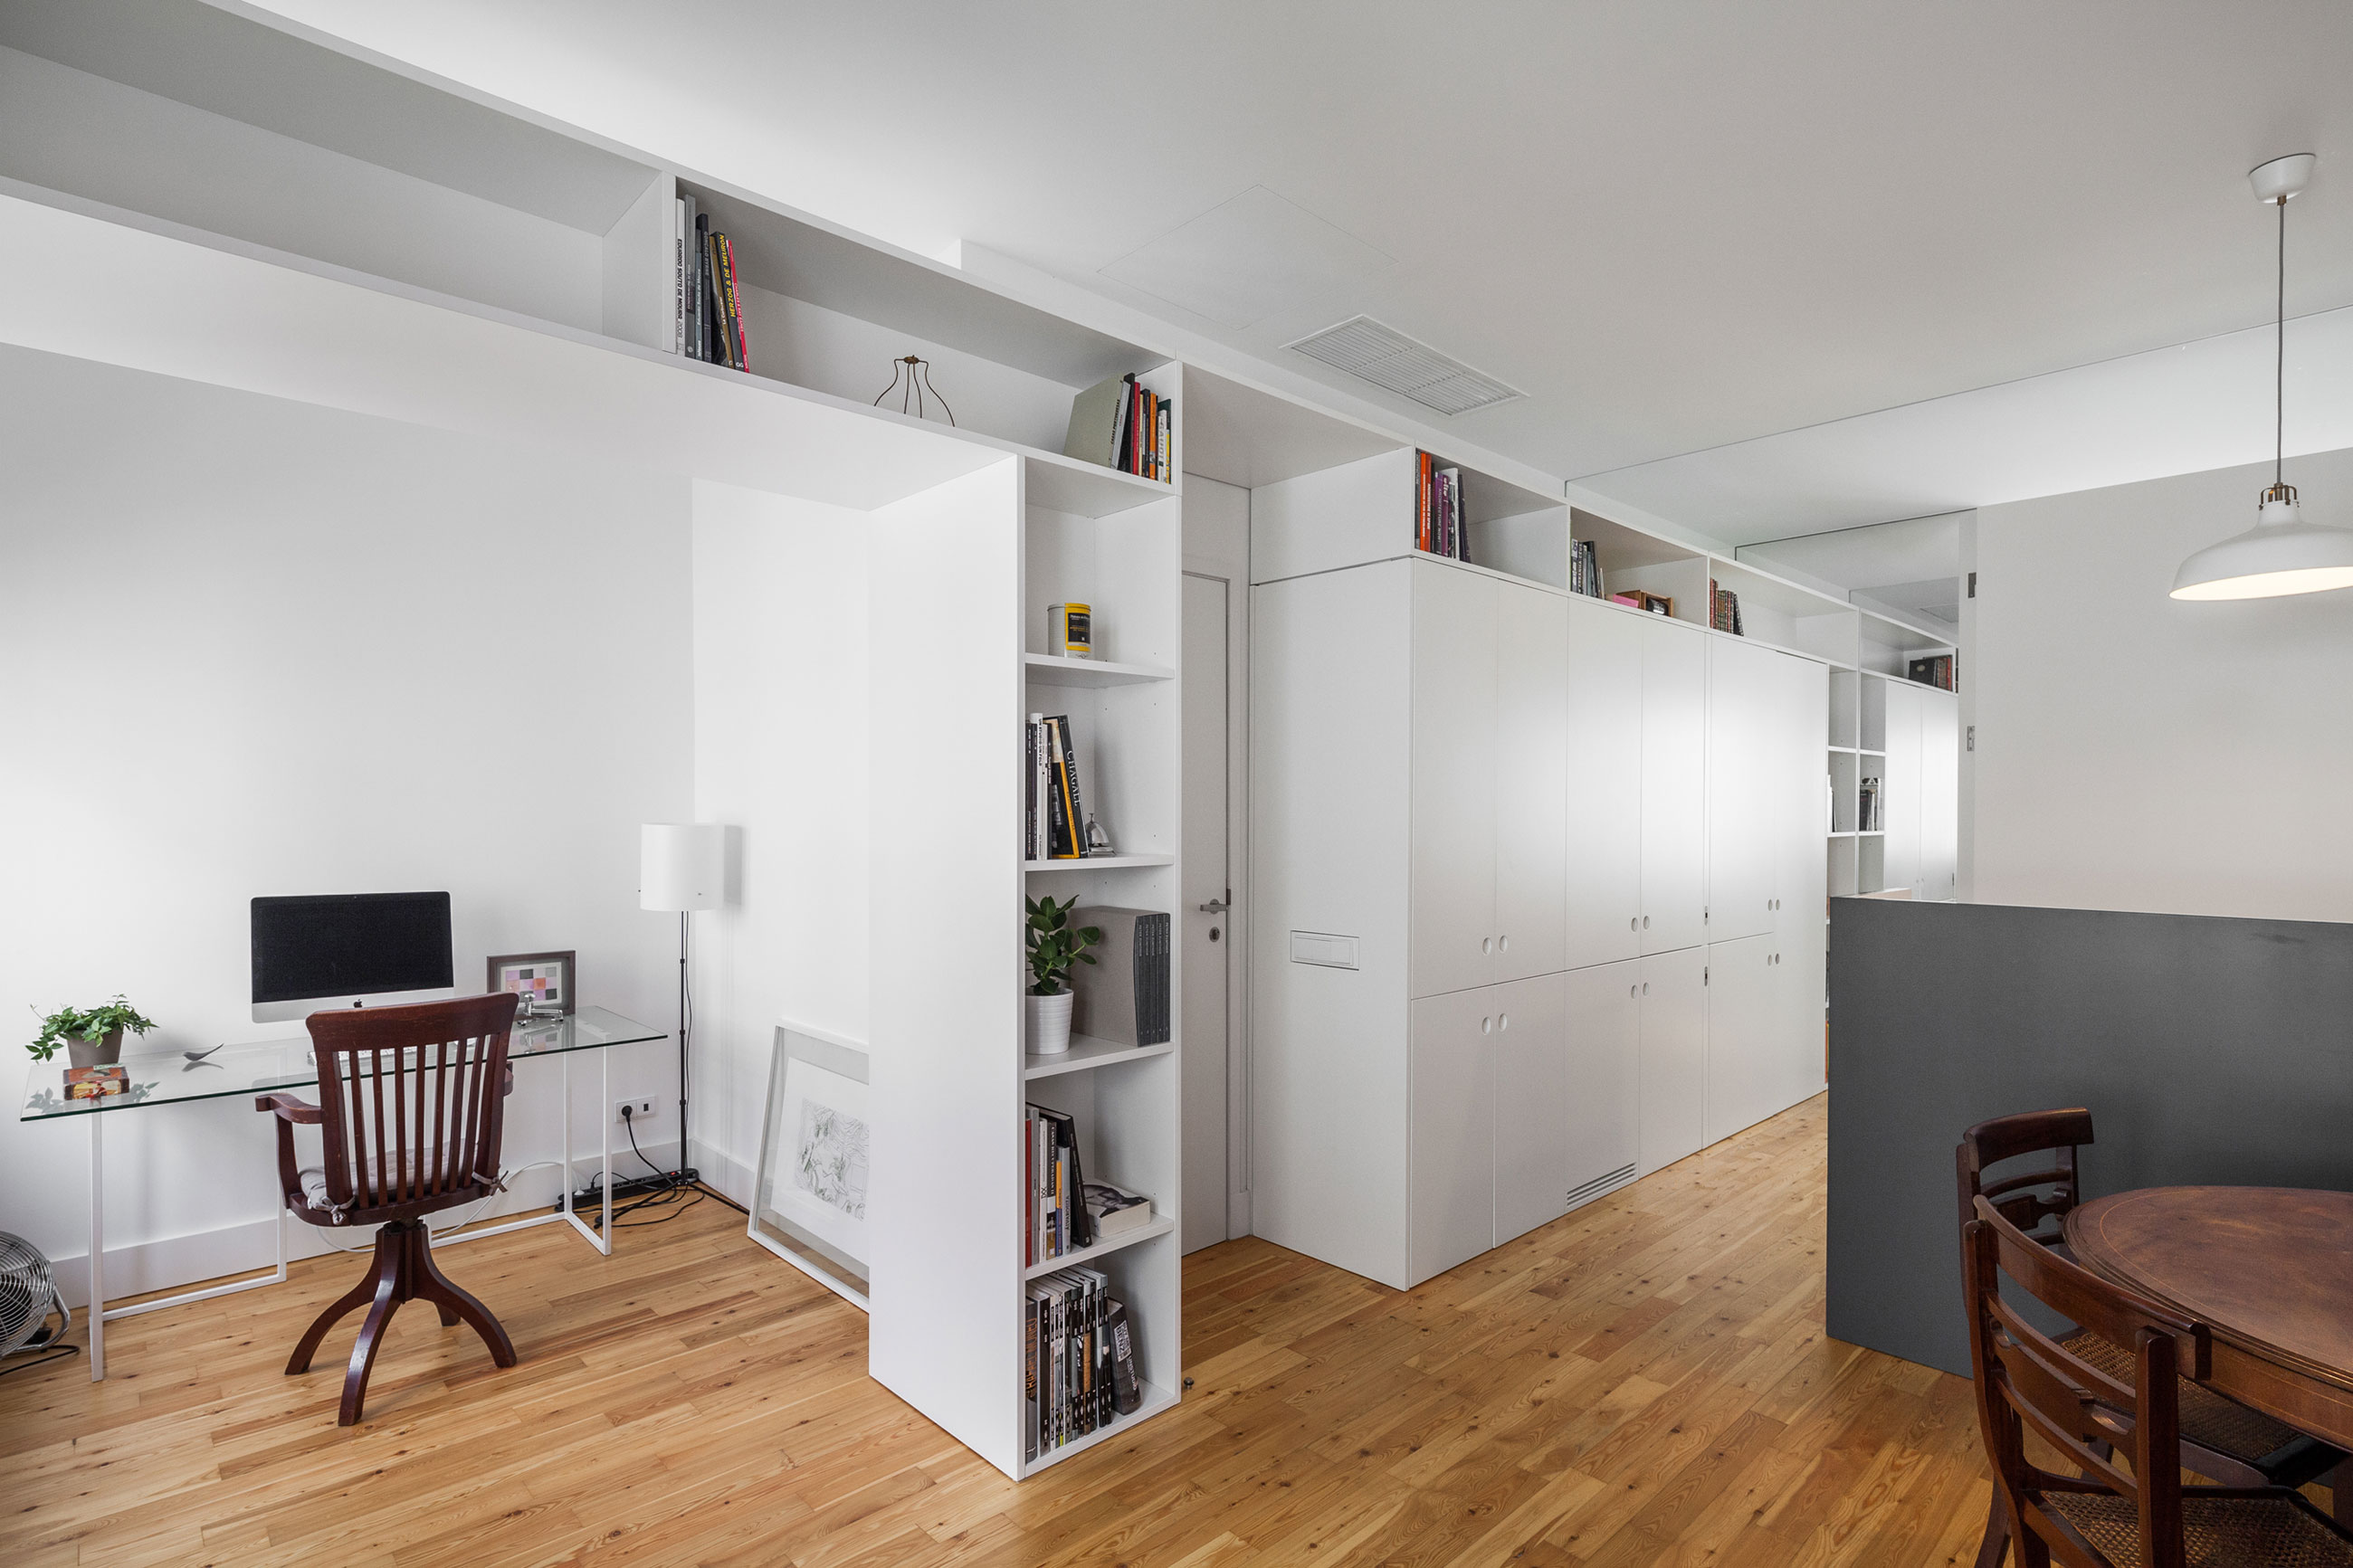 Apartment AB9 by Filipe Melo Oliveira